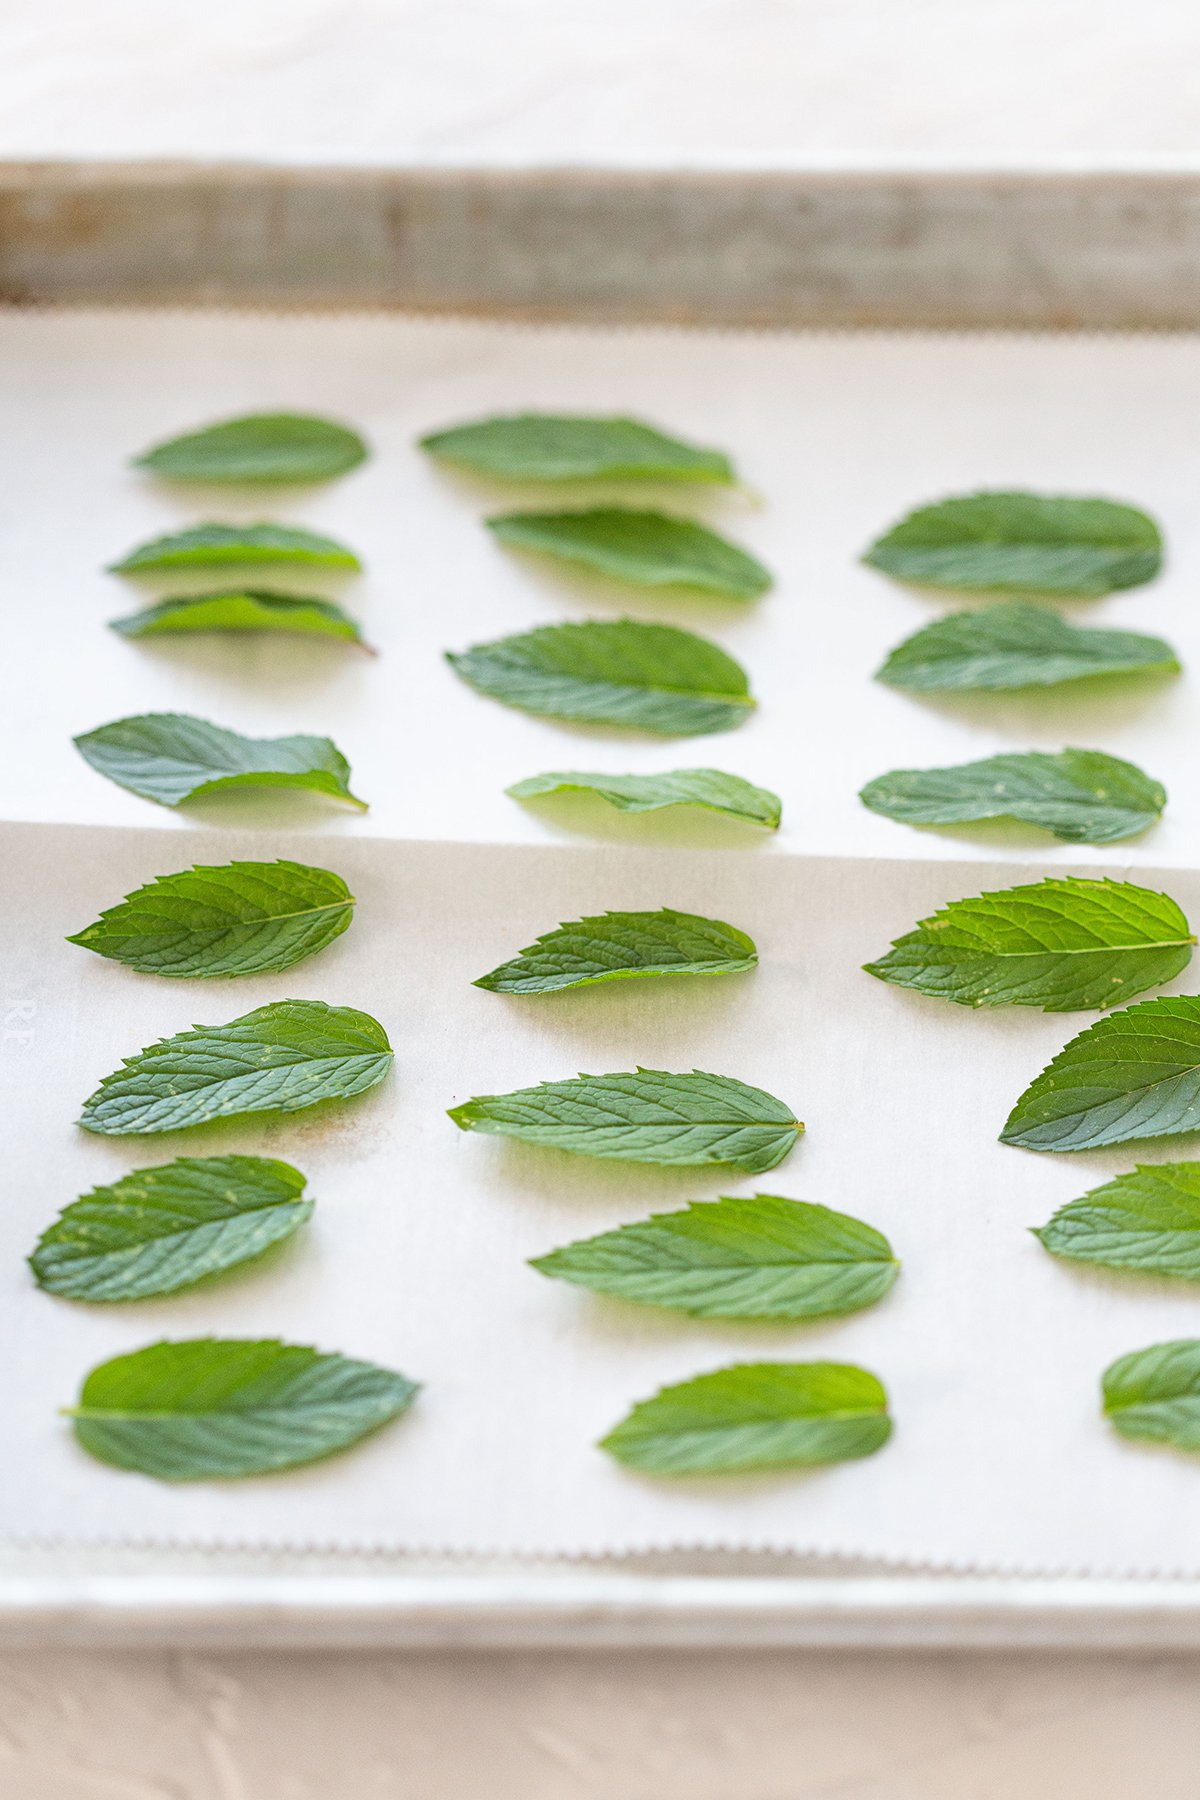 Tray of Mint Leaves